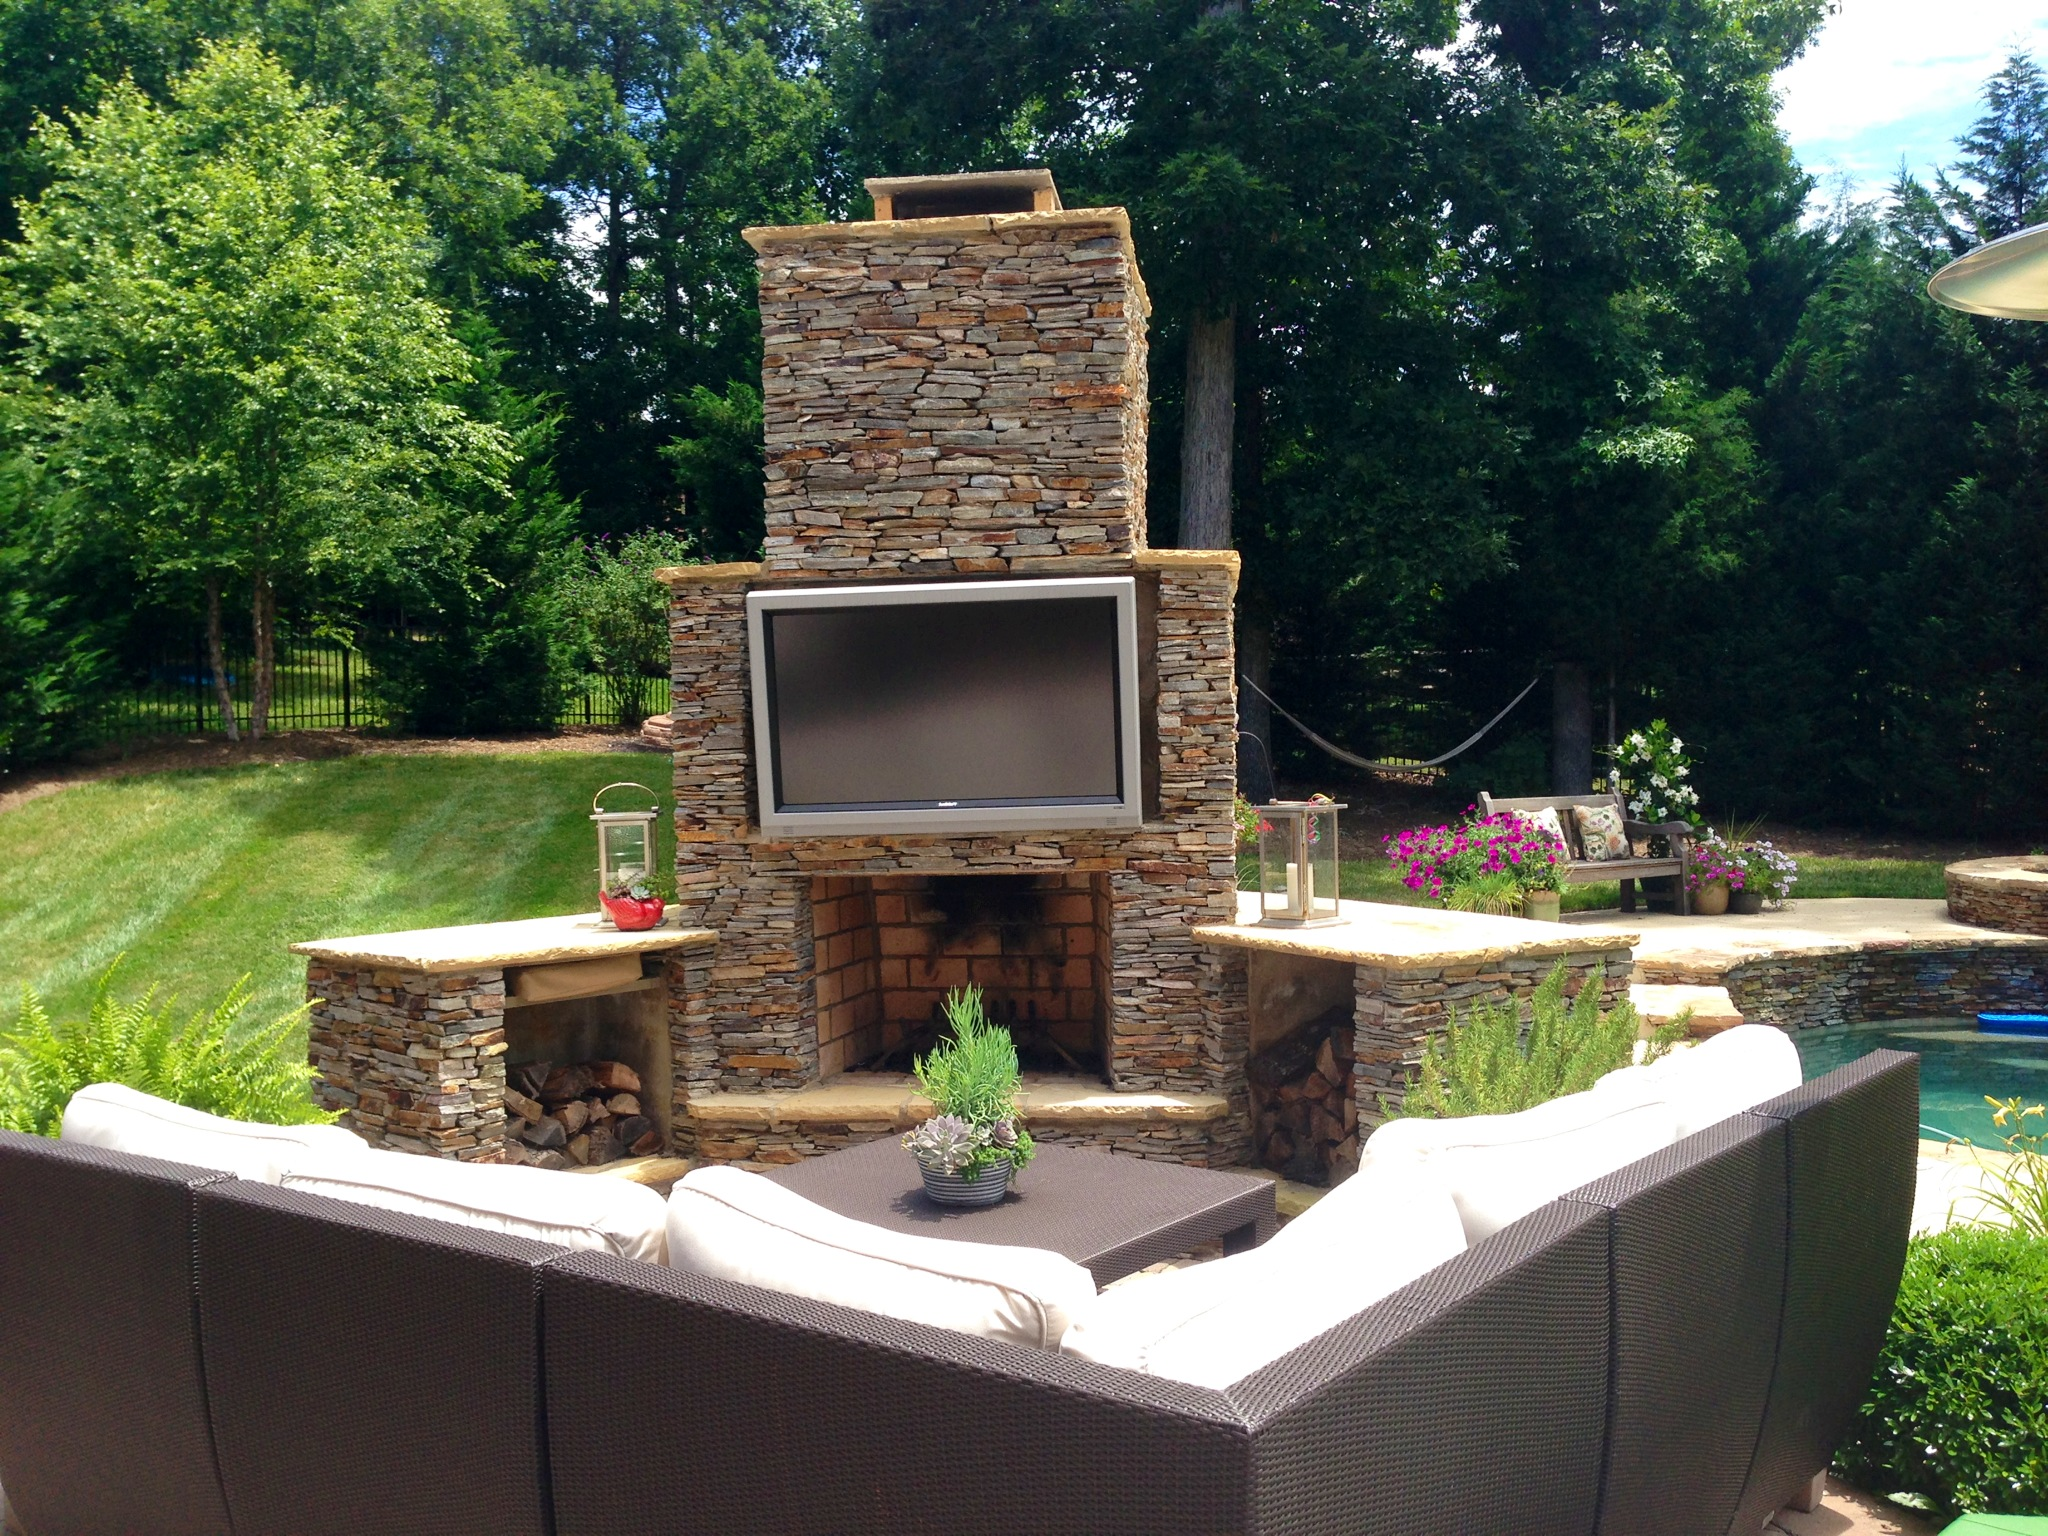 How To Build A Backyard Man Cave | St. Louis decks ... on Fireplace In Yard id=47753